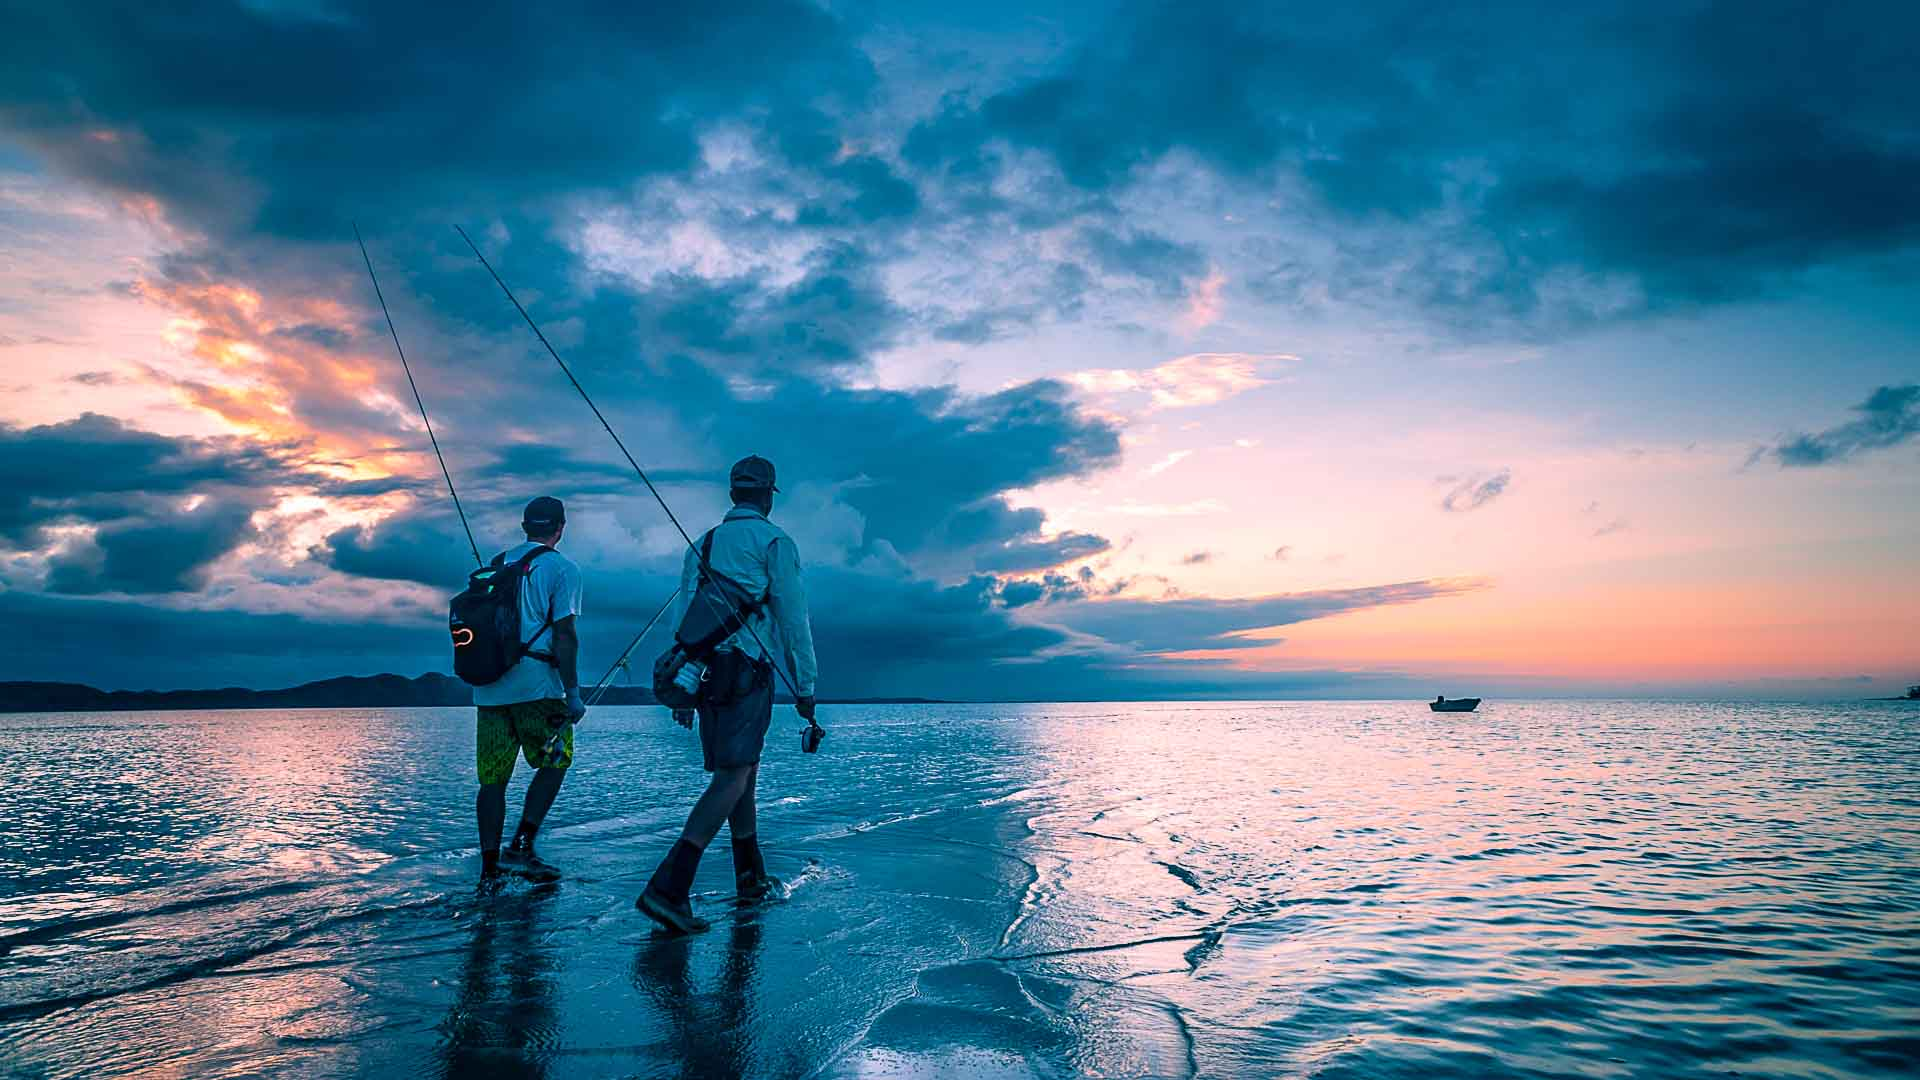 Damien brouste fly fishing photography for Salt water fly fishing